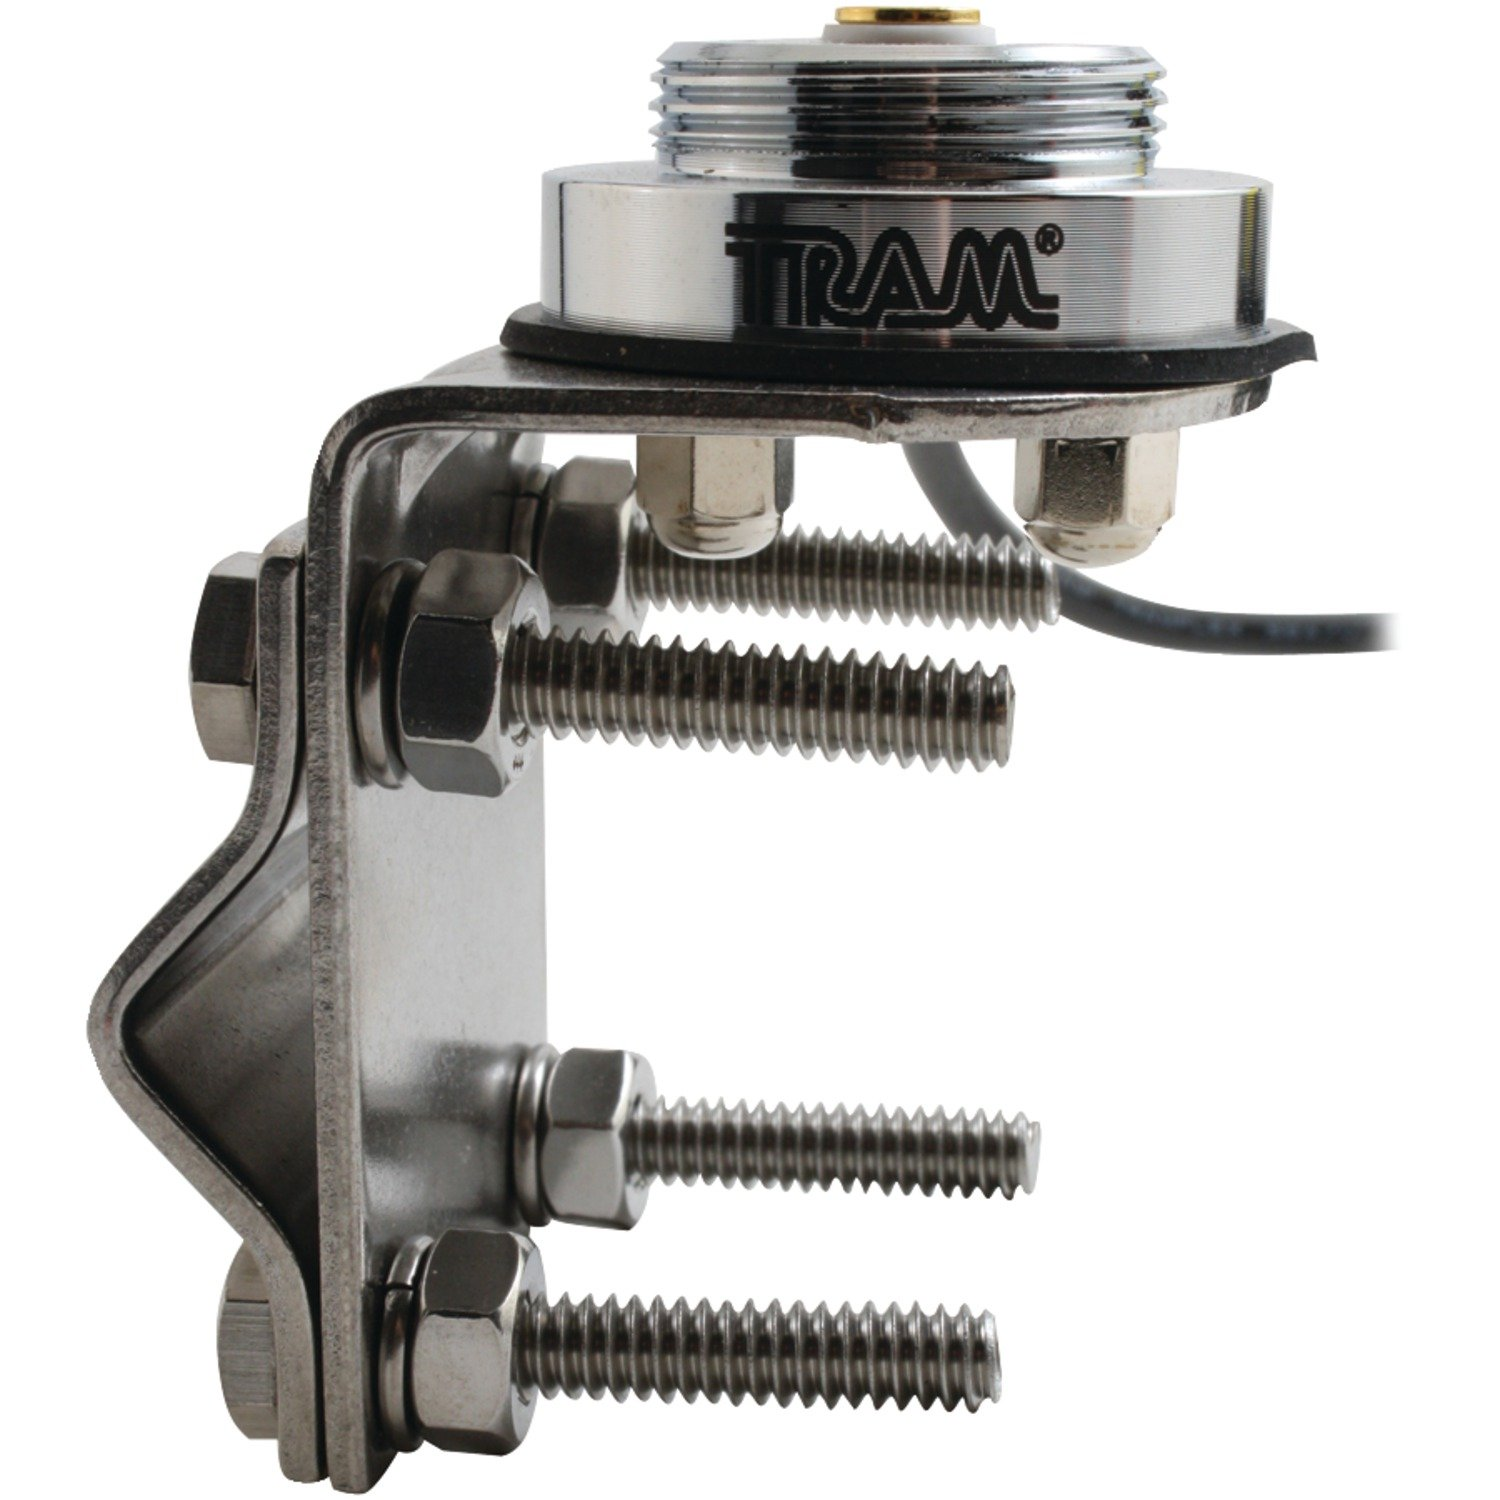 TRAM NMO Mirror Mount Kit with 17' Coaxial Cable by TRAM